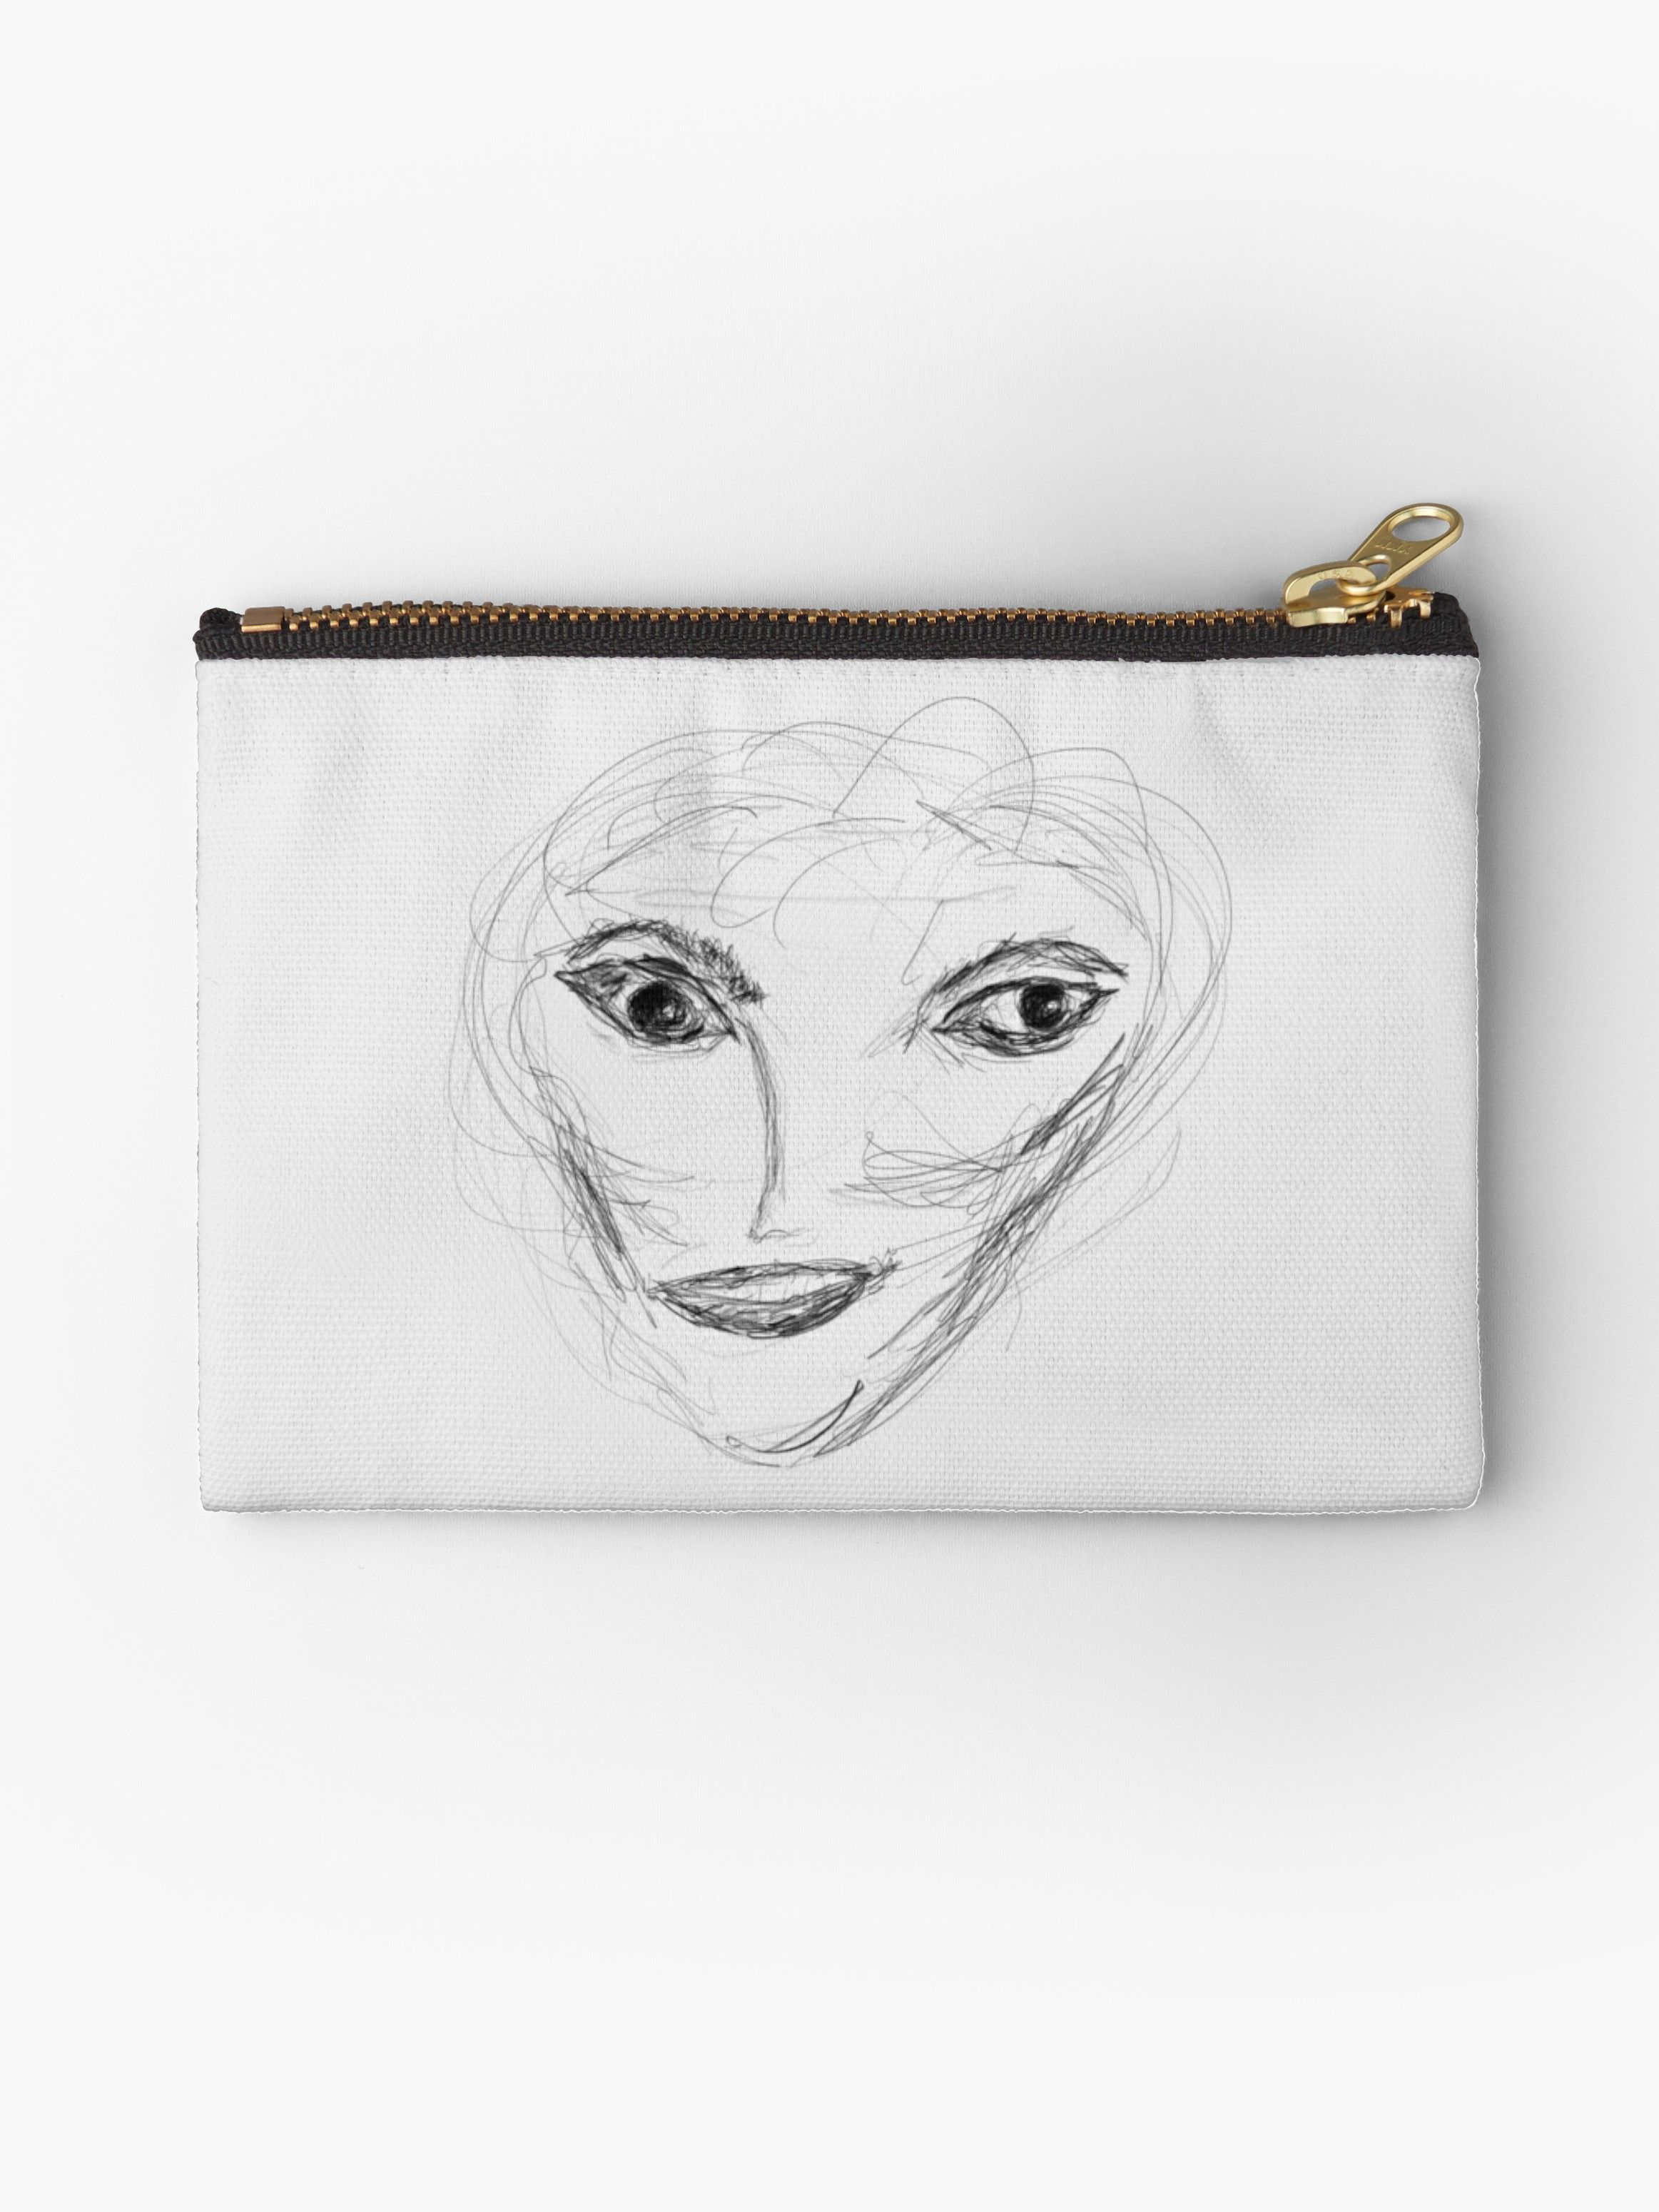 Petite apple pencil drawing studio pouch by billowenart